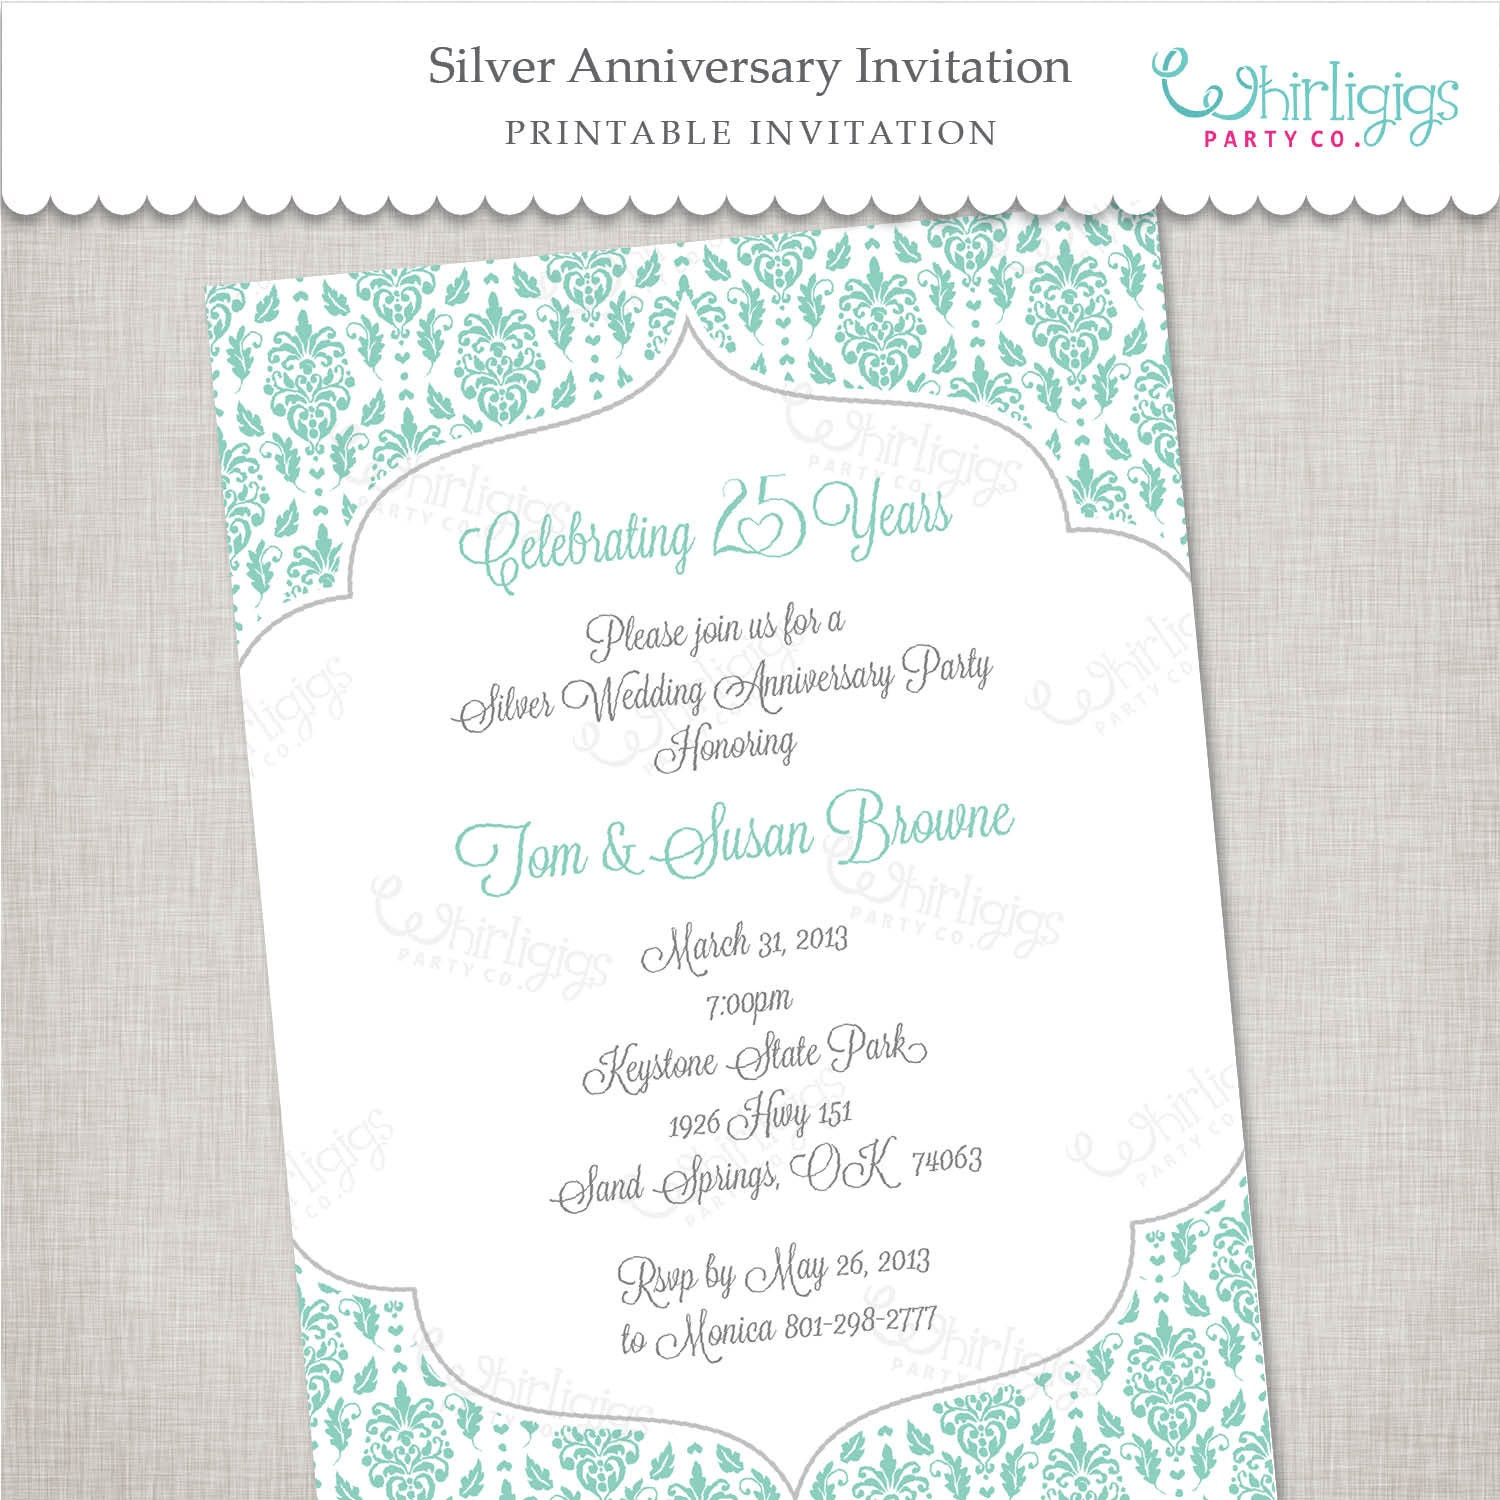 25th Silver Anniversary Invitation In Blue And Silver